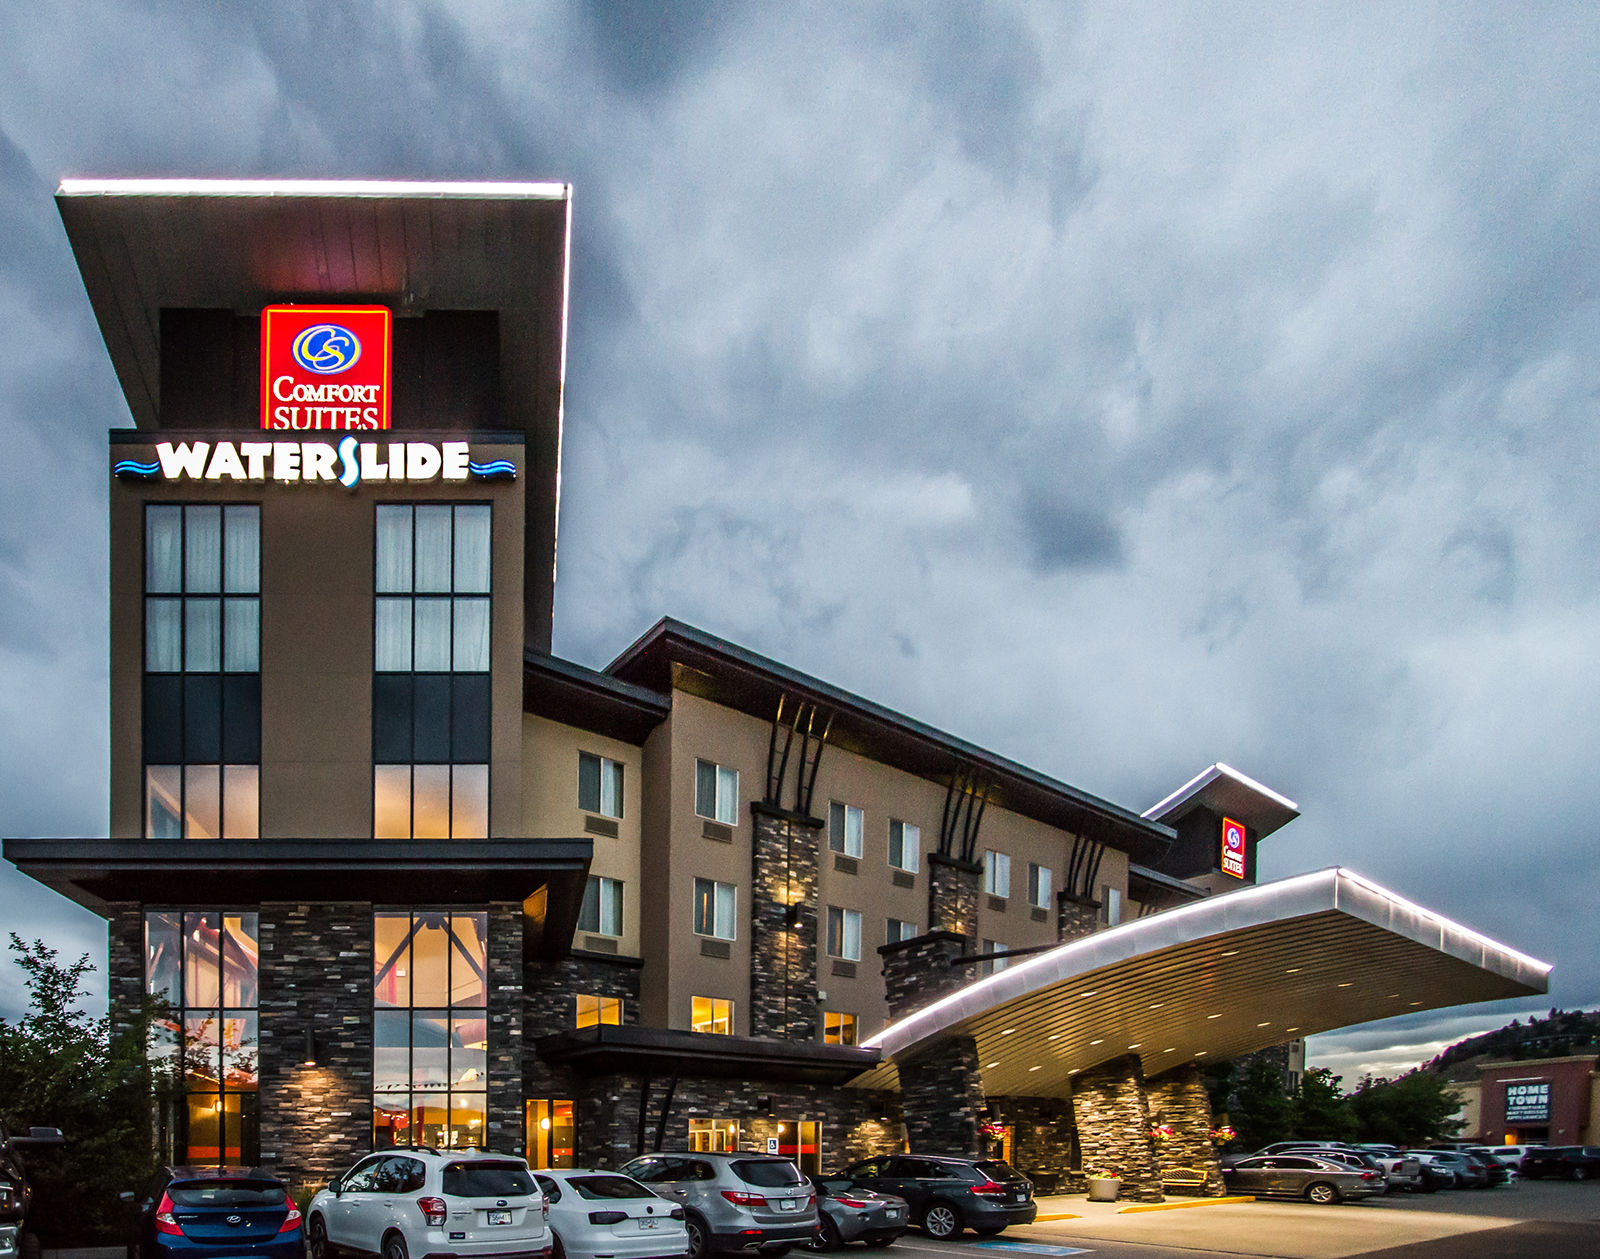 Comfort Suites Kelowna has been named as one of the top Choice hotels in Canada for hospitality and service